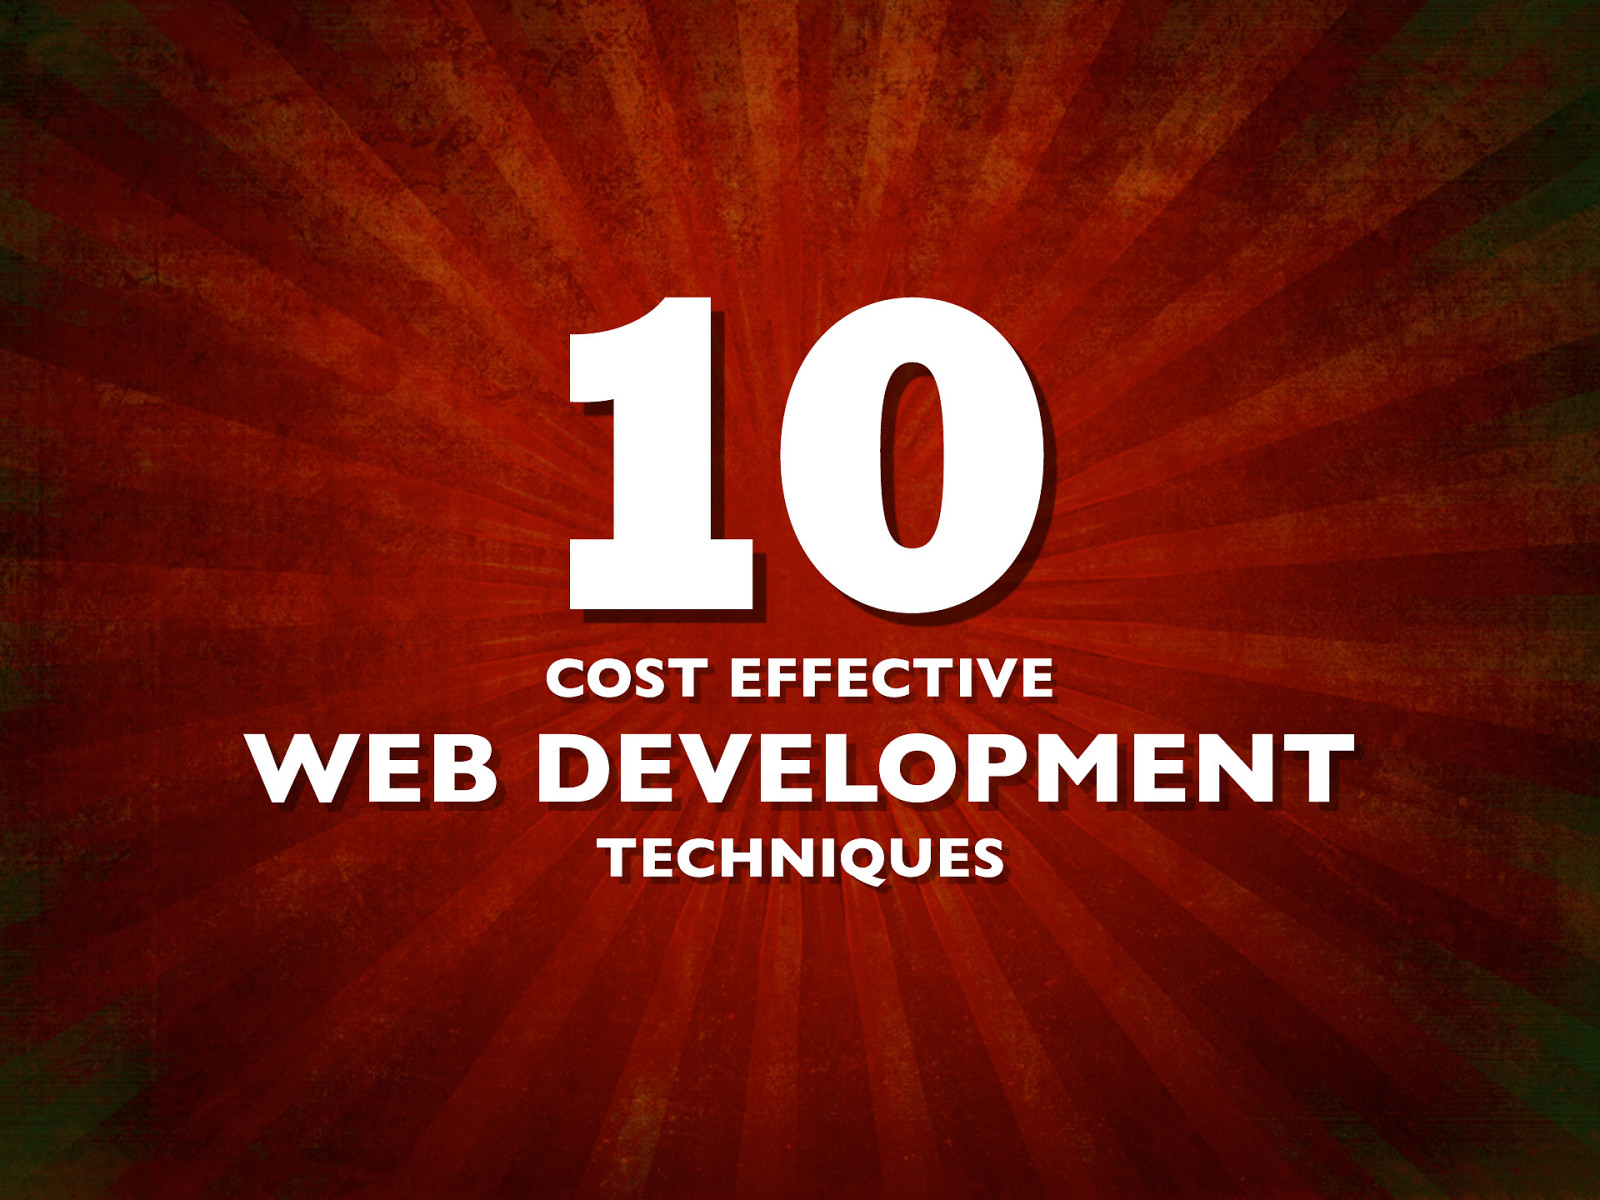 10 Cost Effective Web Development Techniques